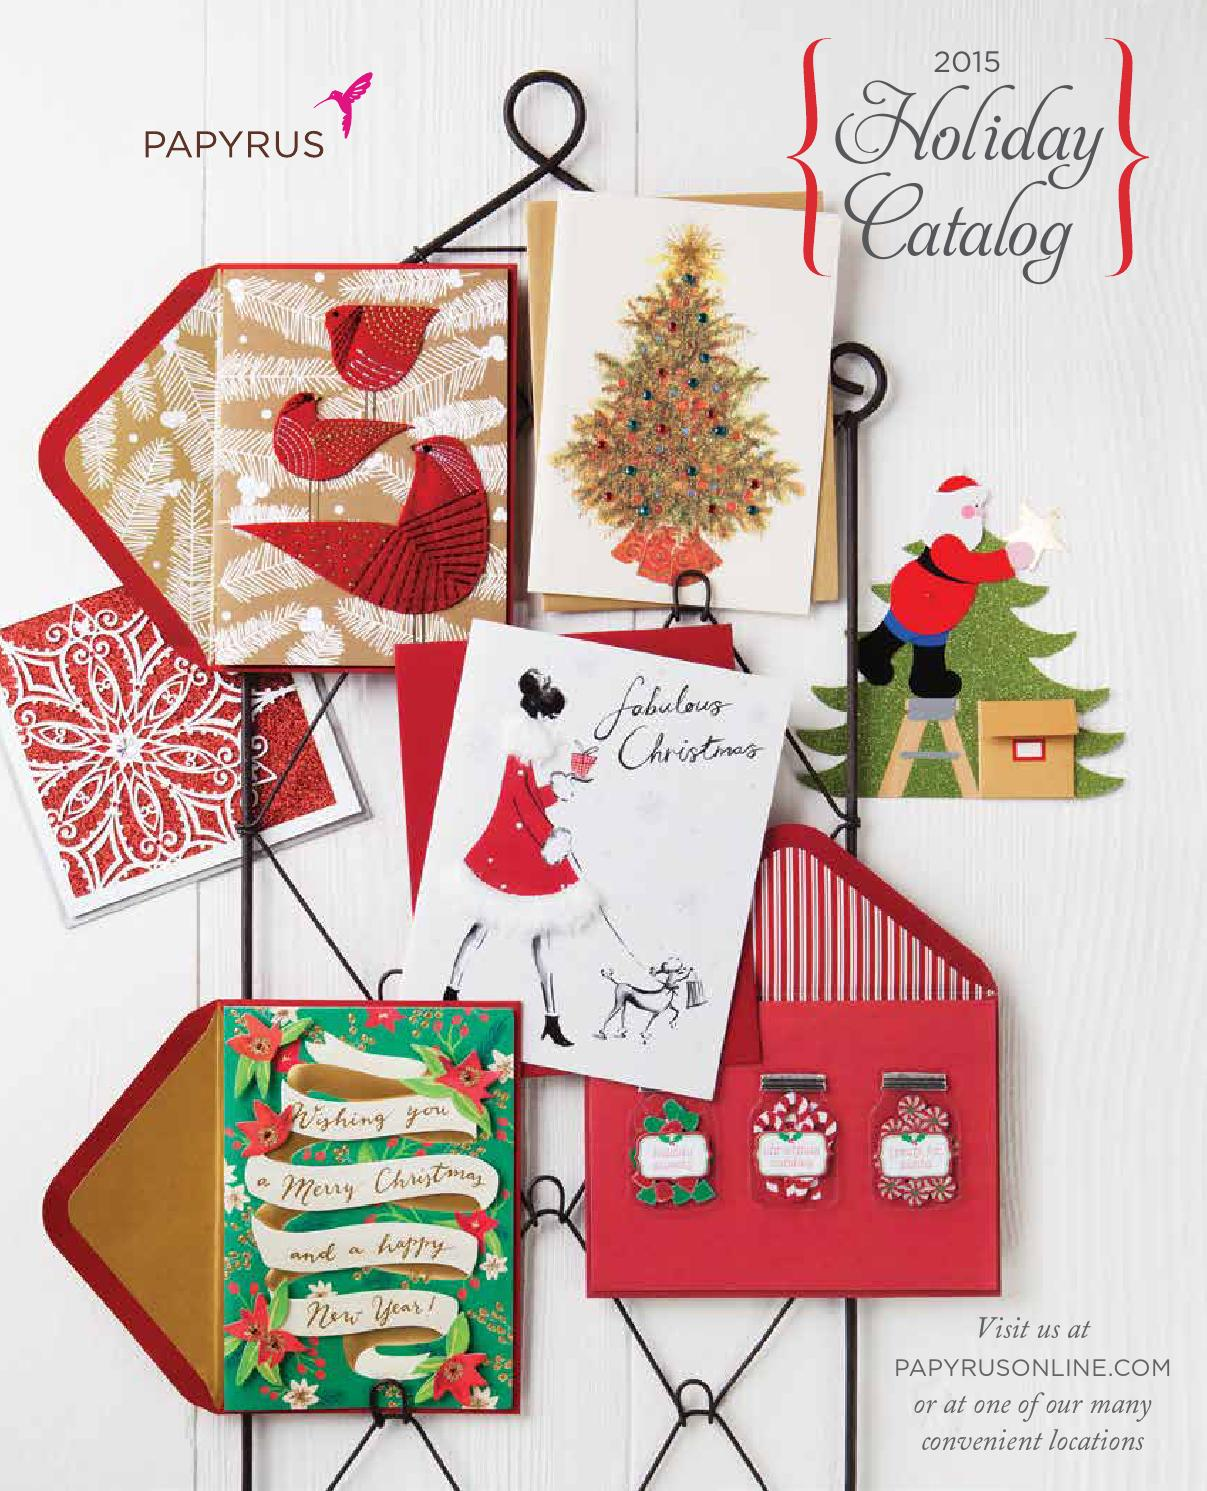 Papyrus 2015 holiday gifts custom printing guide by papyrus papyrus 2015 holiday gifts custom printing guide by papyrus retail issuu kristyandbryce Gallery